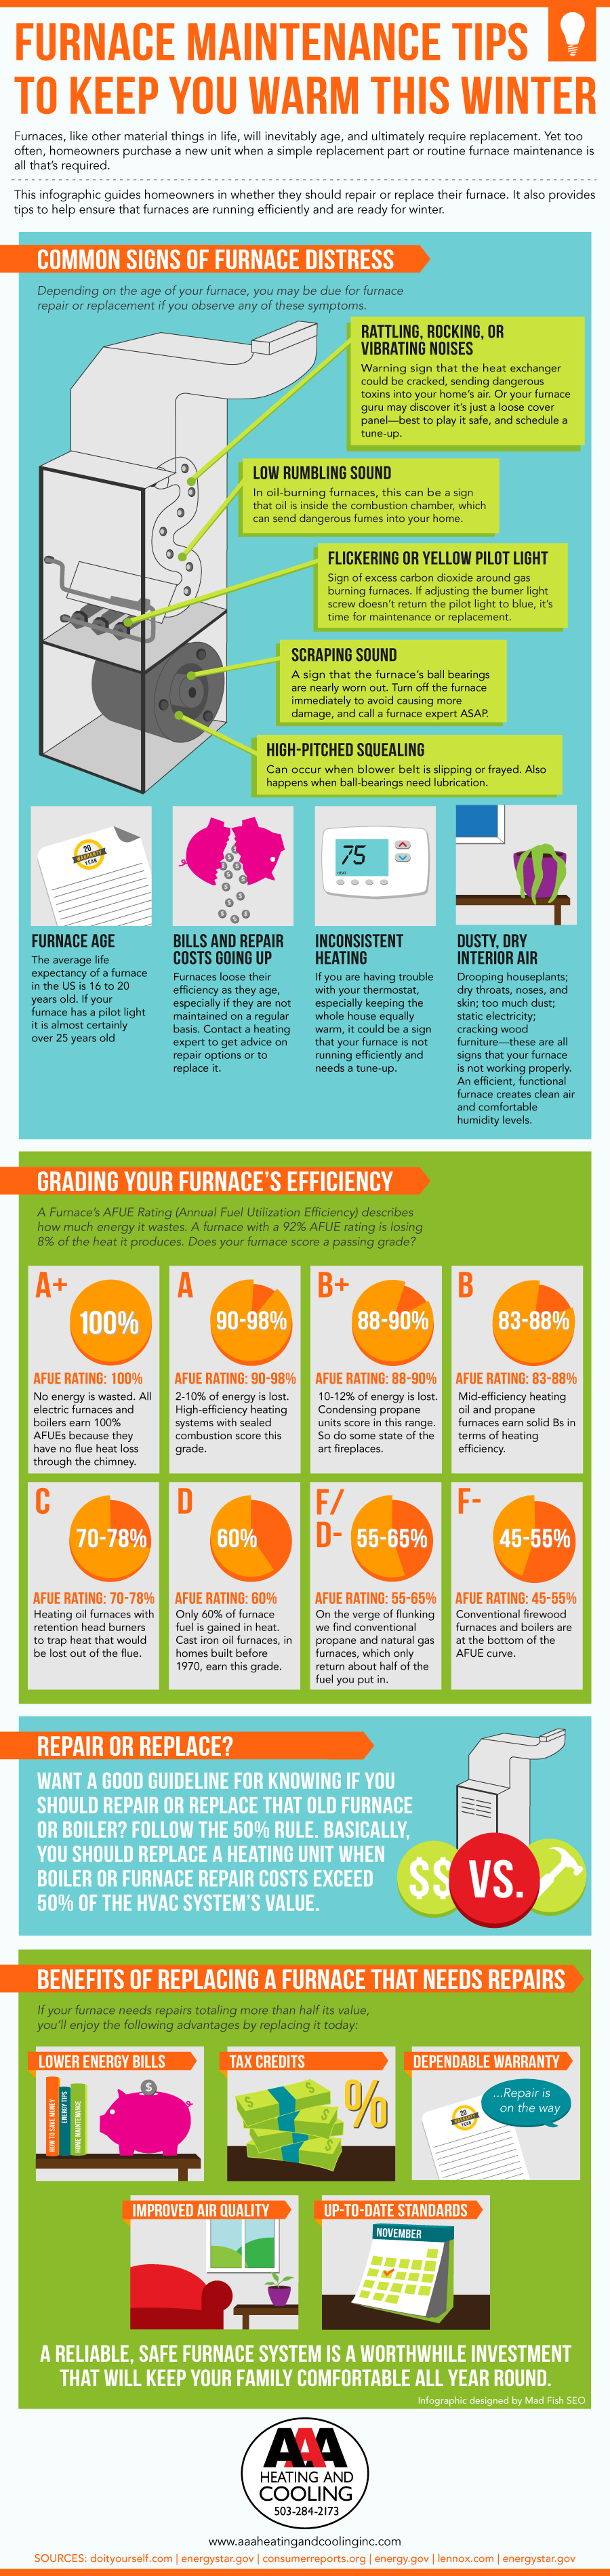 Furnace Maintenance Tips Repair Or Replace Infographic